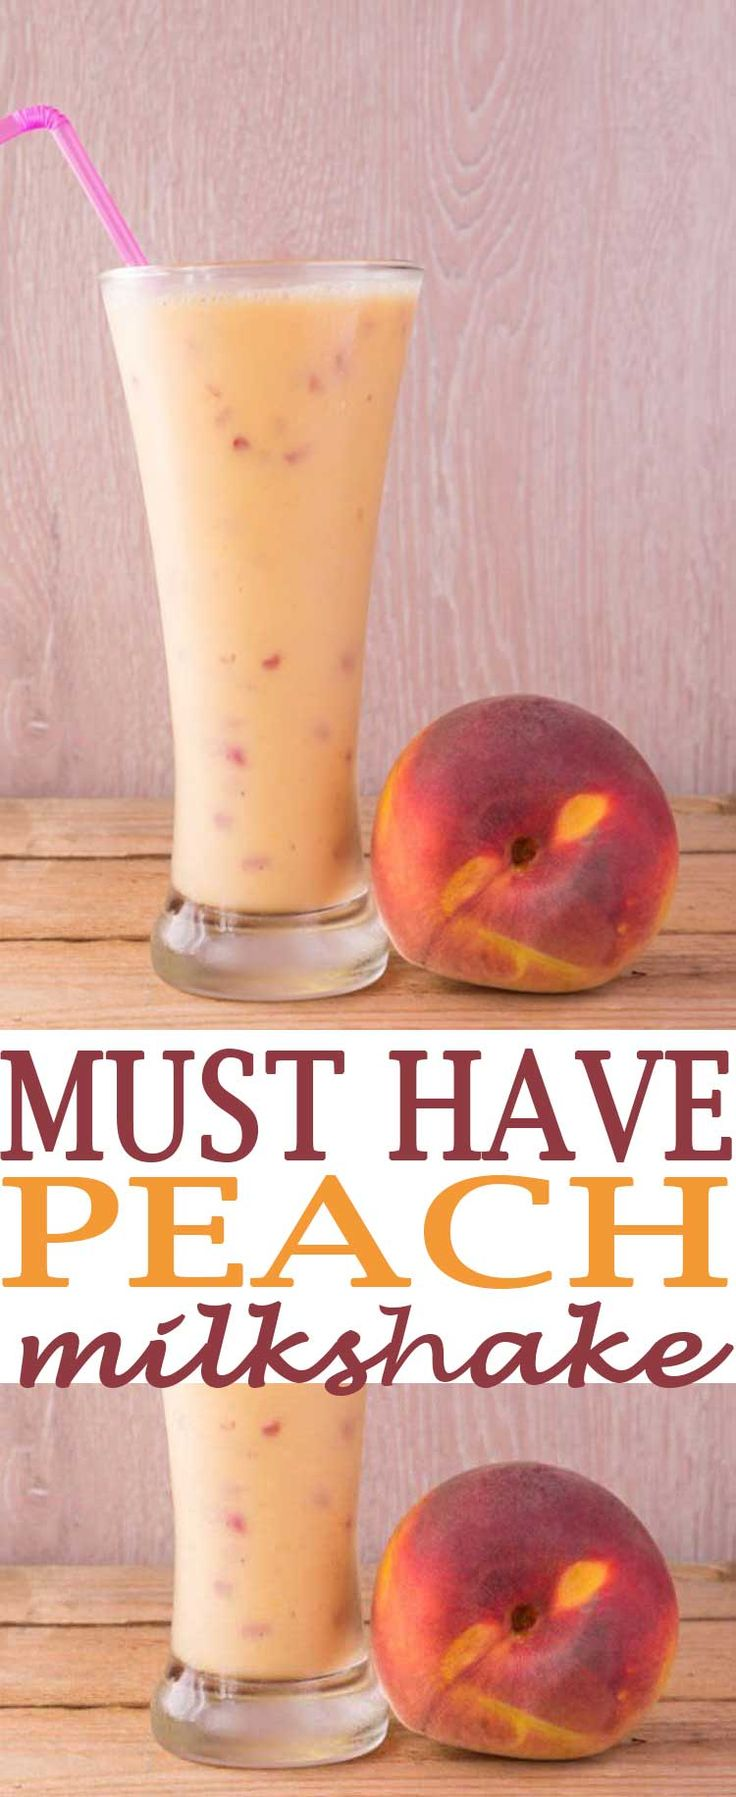 peach soy milkshake. peach milkshake with soy milk. Our Peach Milk Shake with Soy Milk is so delicious. Soy milk is a healthy dairy milk alternative that you can use as a substitute in all your milkshakes. You'll want to try this fruity milk shake recipe.